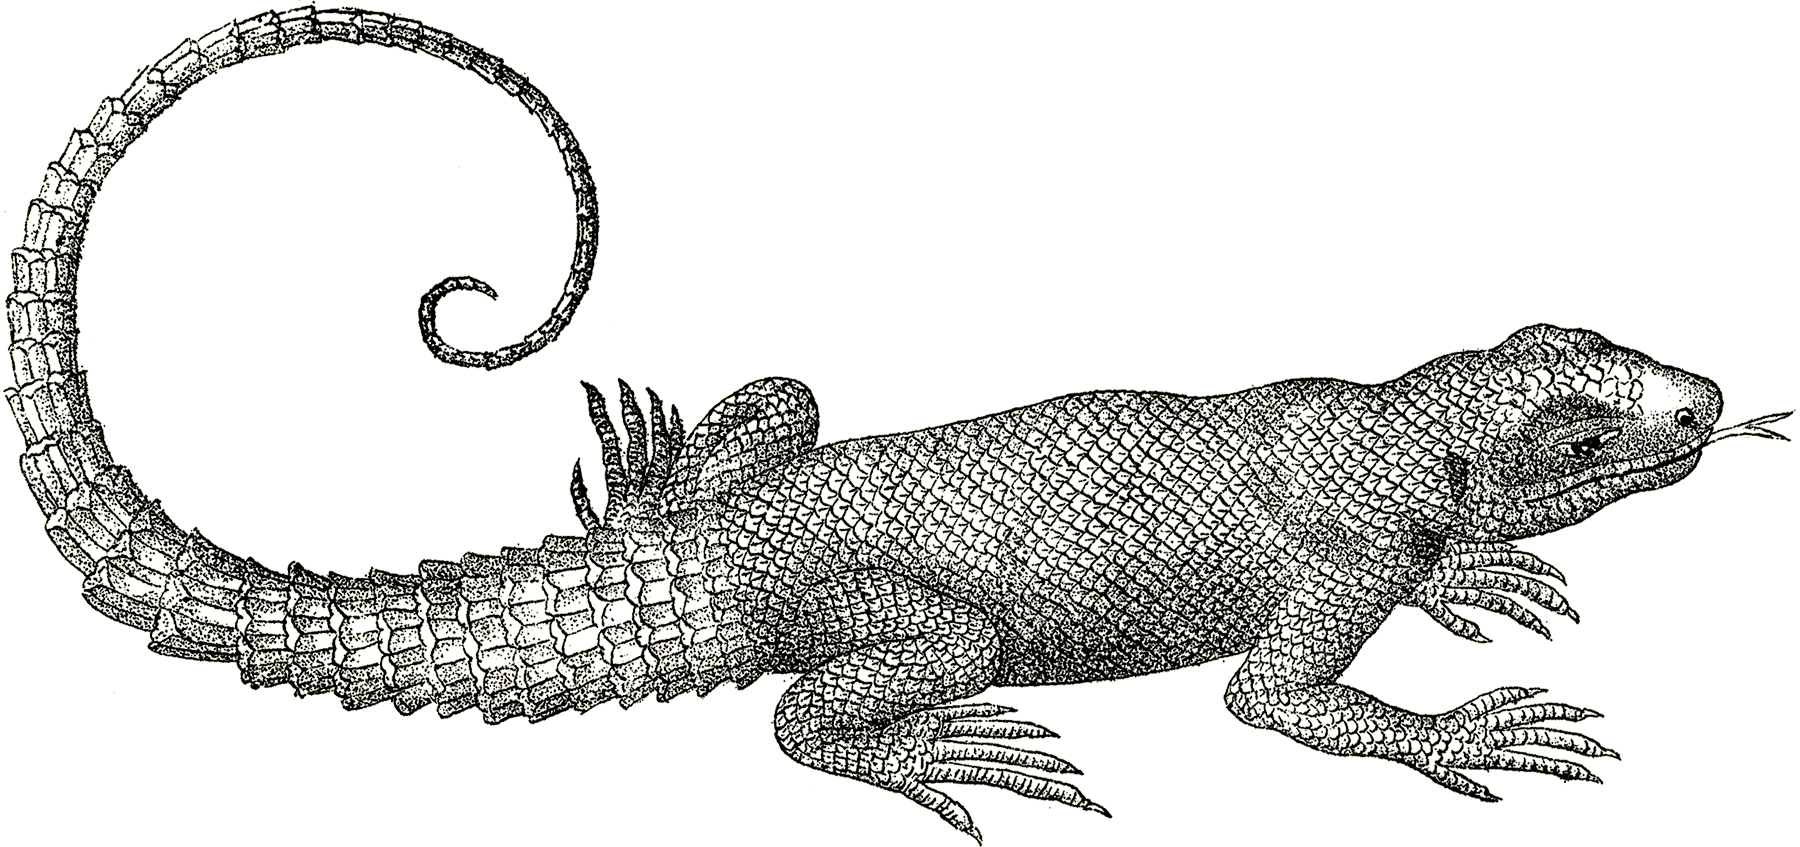 Free Vintage Lizard Clip Art! - The Graphics Fairy for Clipart Lizard Black And White  53kxo